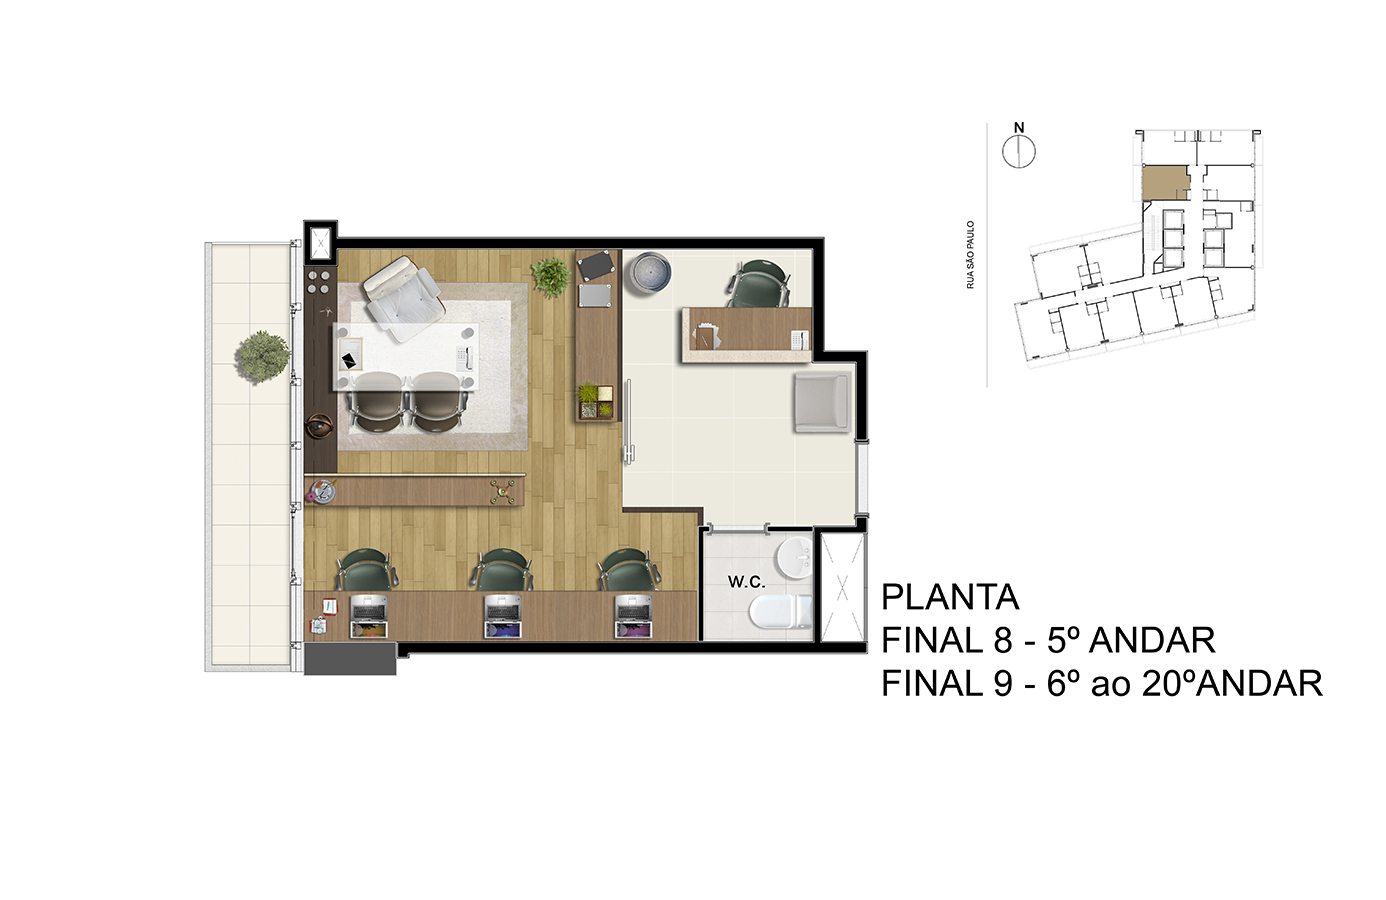 Planta - Final 8 - 5° Andar / Final 9 - 6° ao 20° Andar Manhattan Office Santos